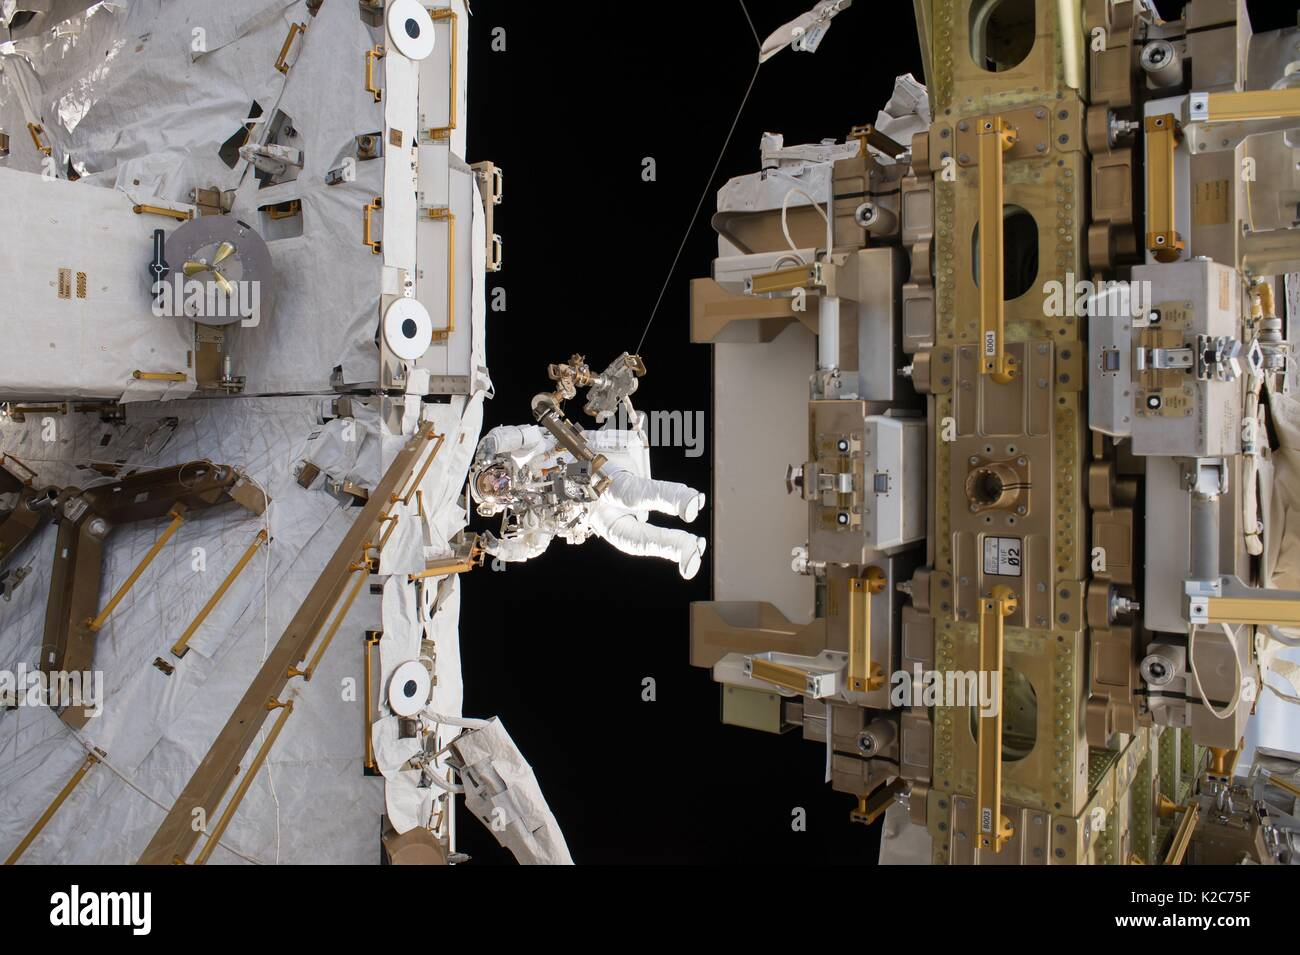 NASA International Space Station Expedition 50 prime crew member French astronaut Thomas Pesquet of the European Space Agency works on the outside of the ISS during an EVA spacewalk March 24, 2017 in Earth orbit. - Stock Image